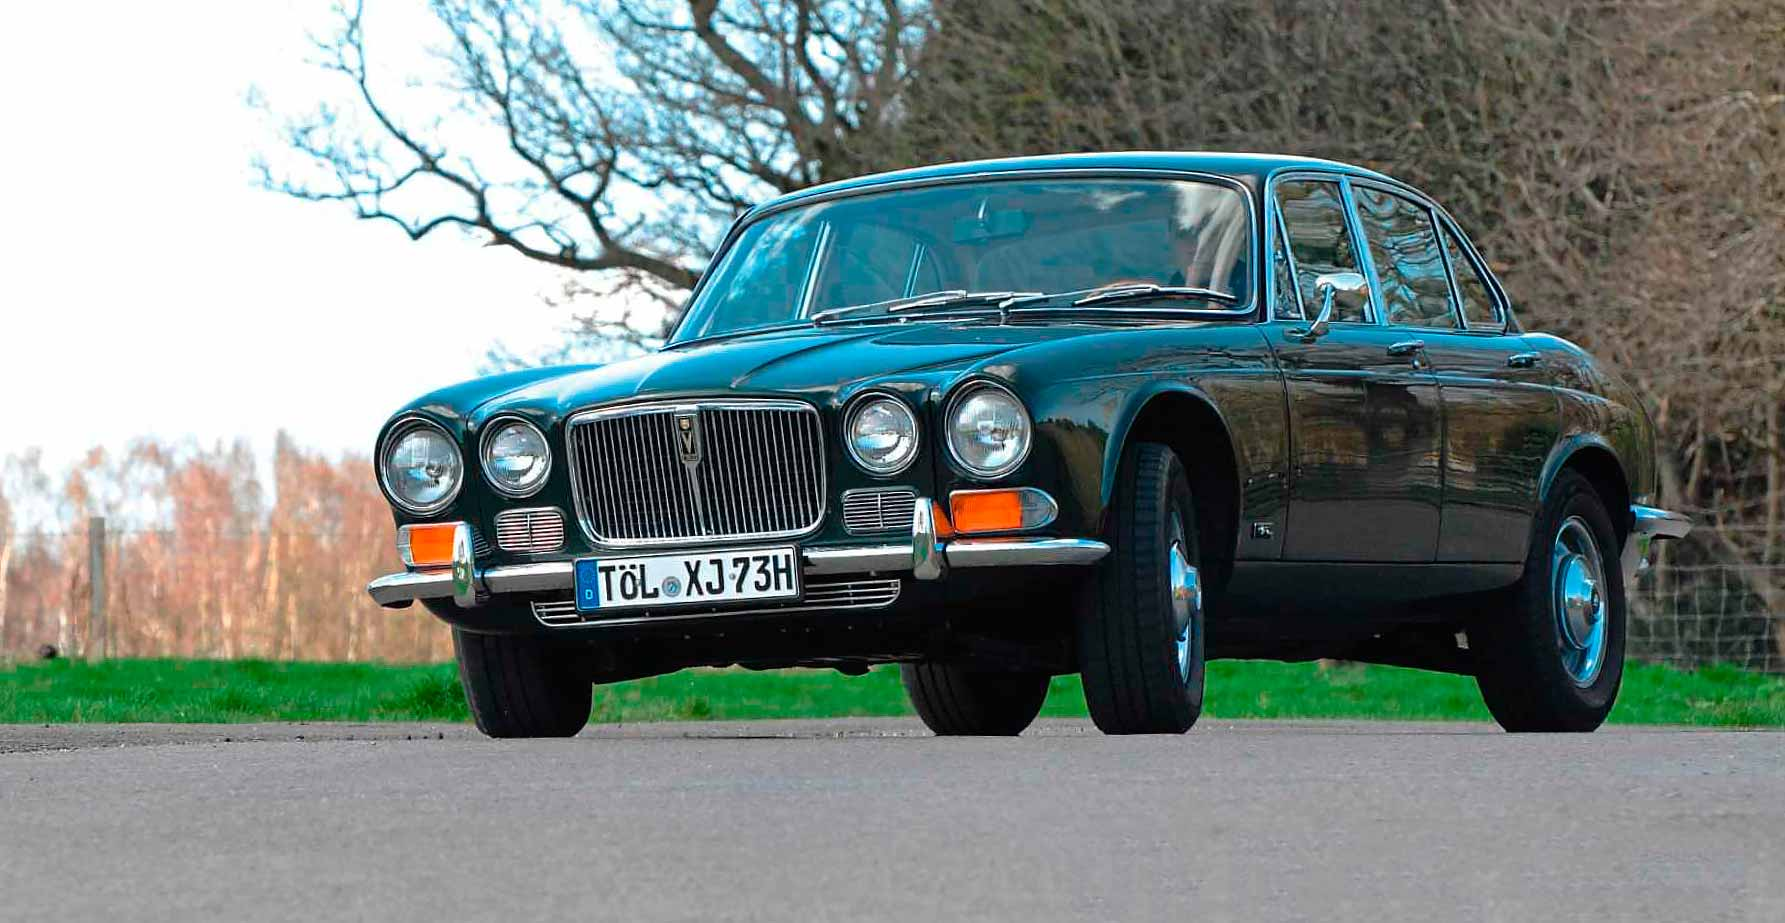 Modified 1972 Jaguar XJ12 Series 1 retrofitted with fuel injection - Drive-My Blogs - Drive